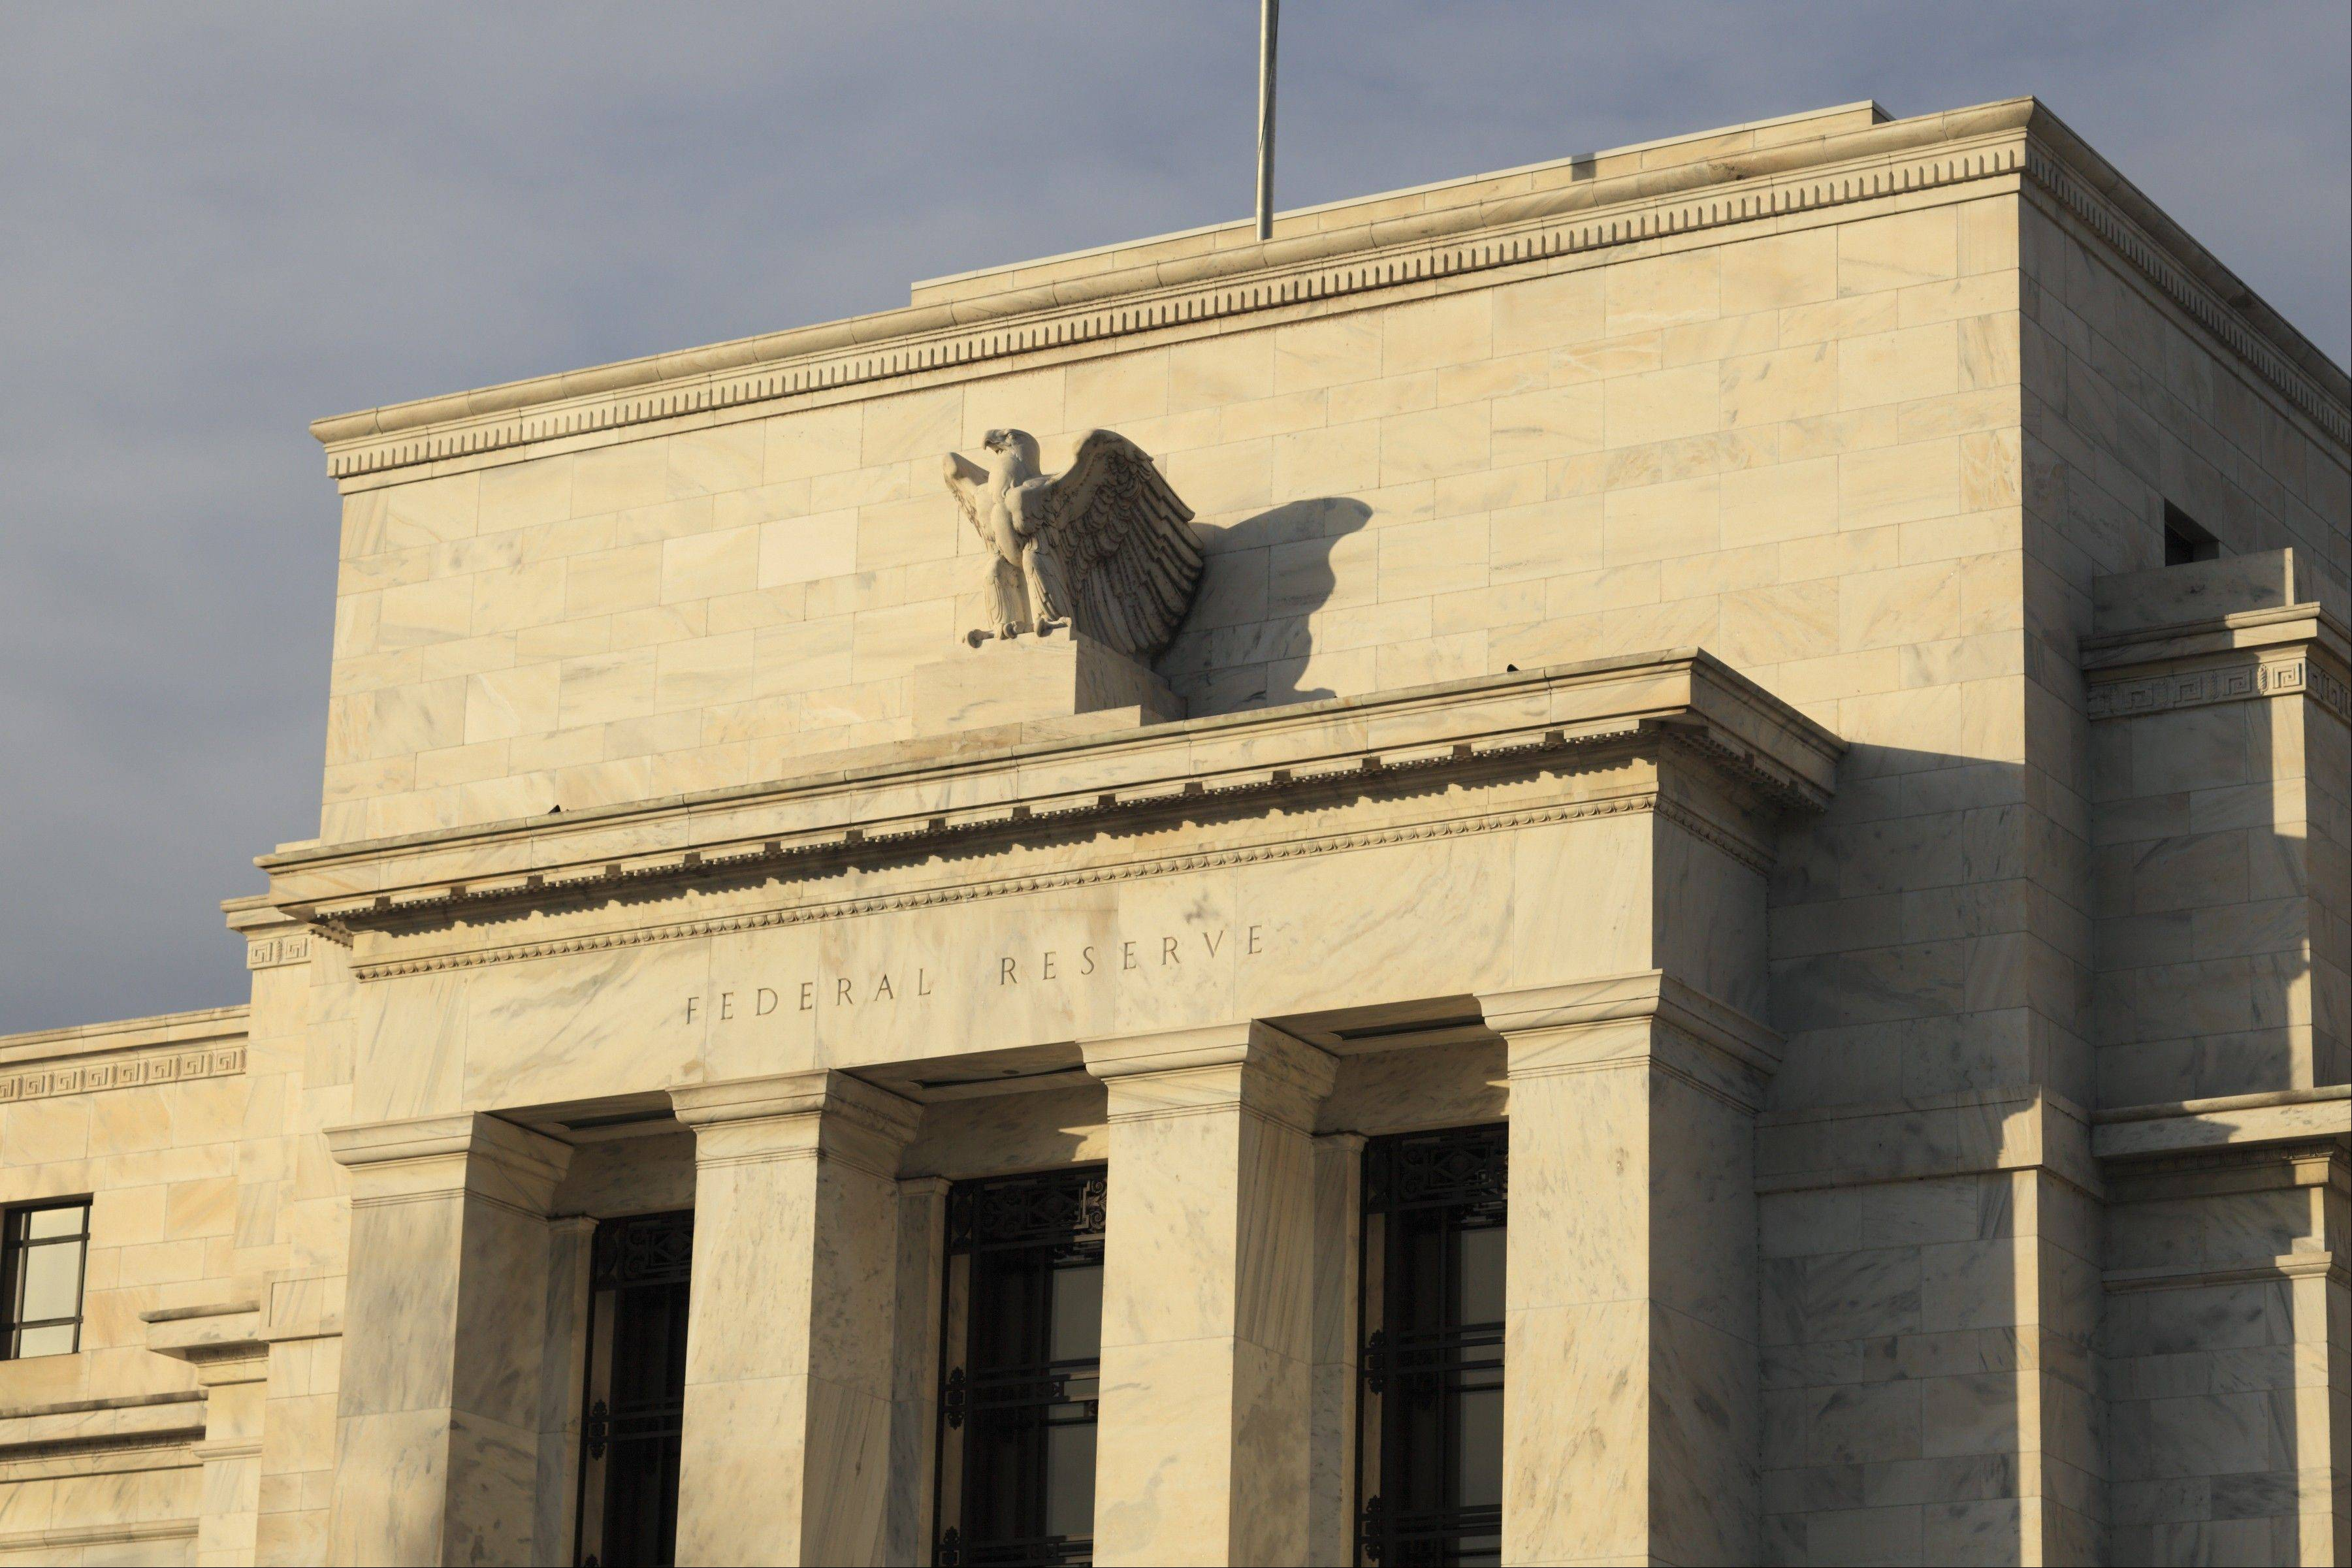 The Federal Reserve appears to be moving toward announcing some new step to try to energize the troubled U.S. economy. The question is whether it will do so after its policy meeting this week. Probably not, many economists say.